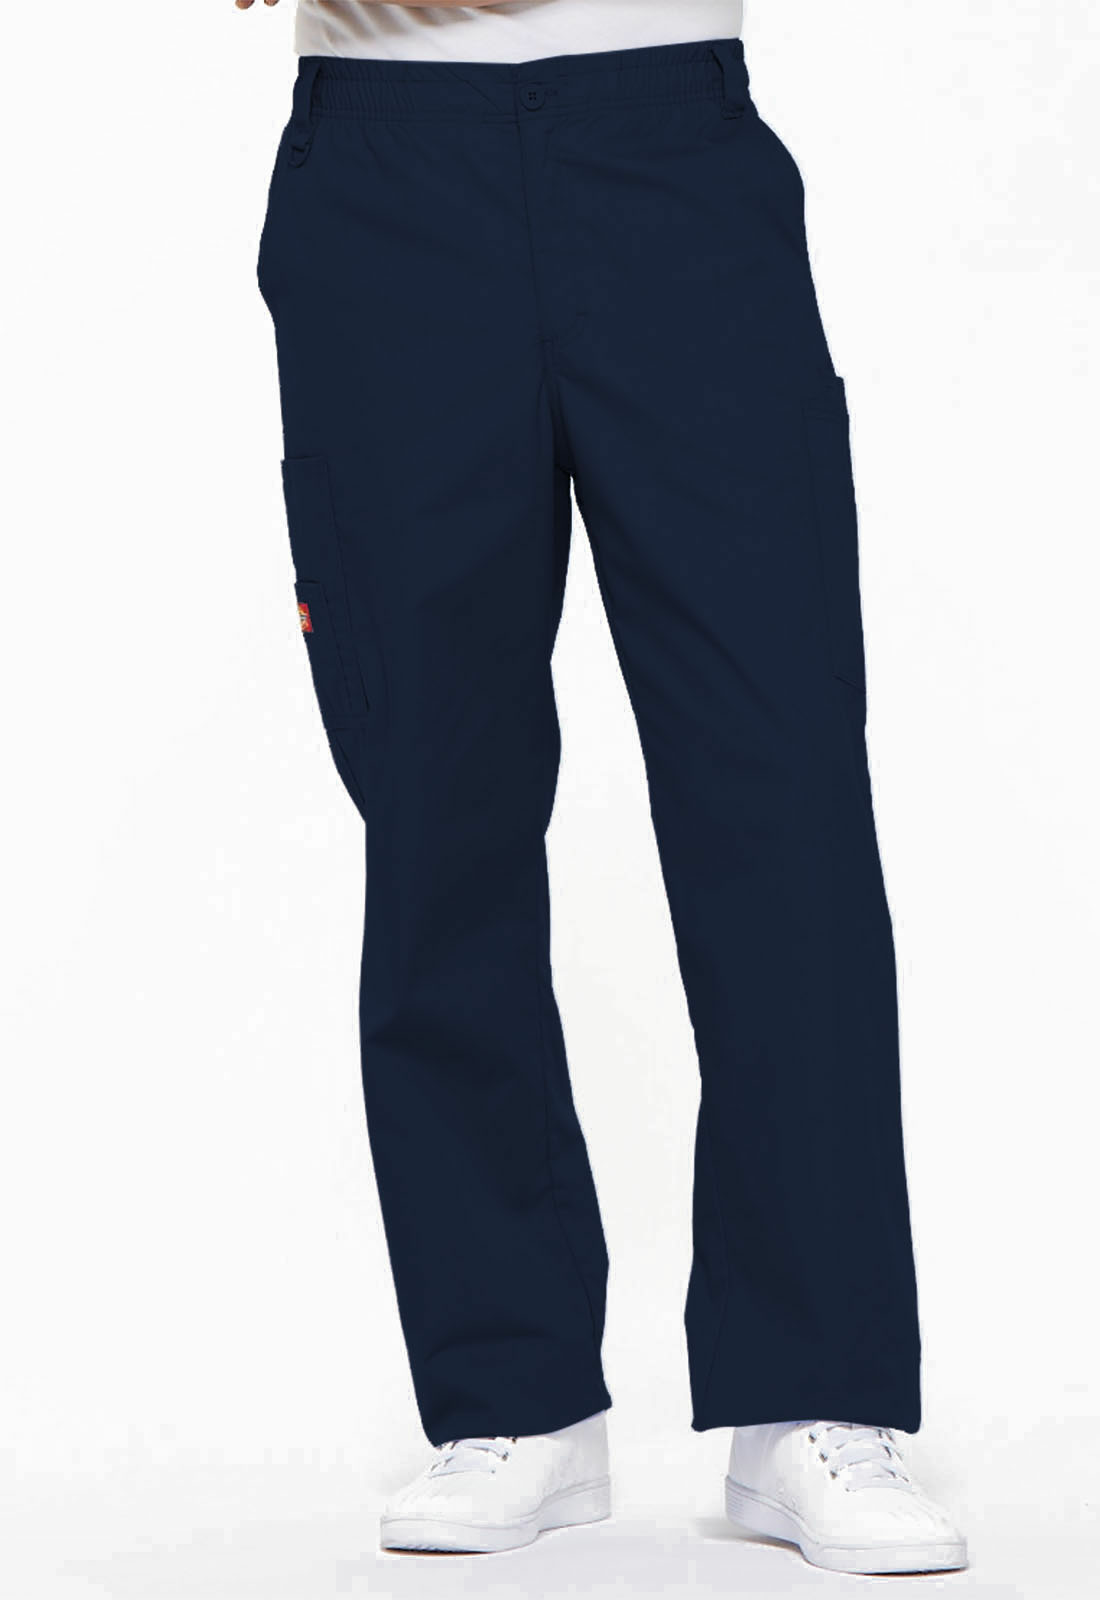 Dickies Scrubs Pants Mens Zipper fly Elastic Waistband Drawstring Pant 81006